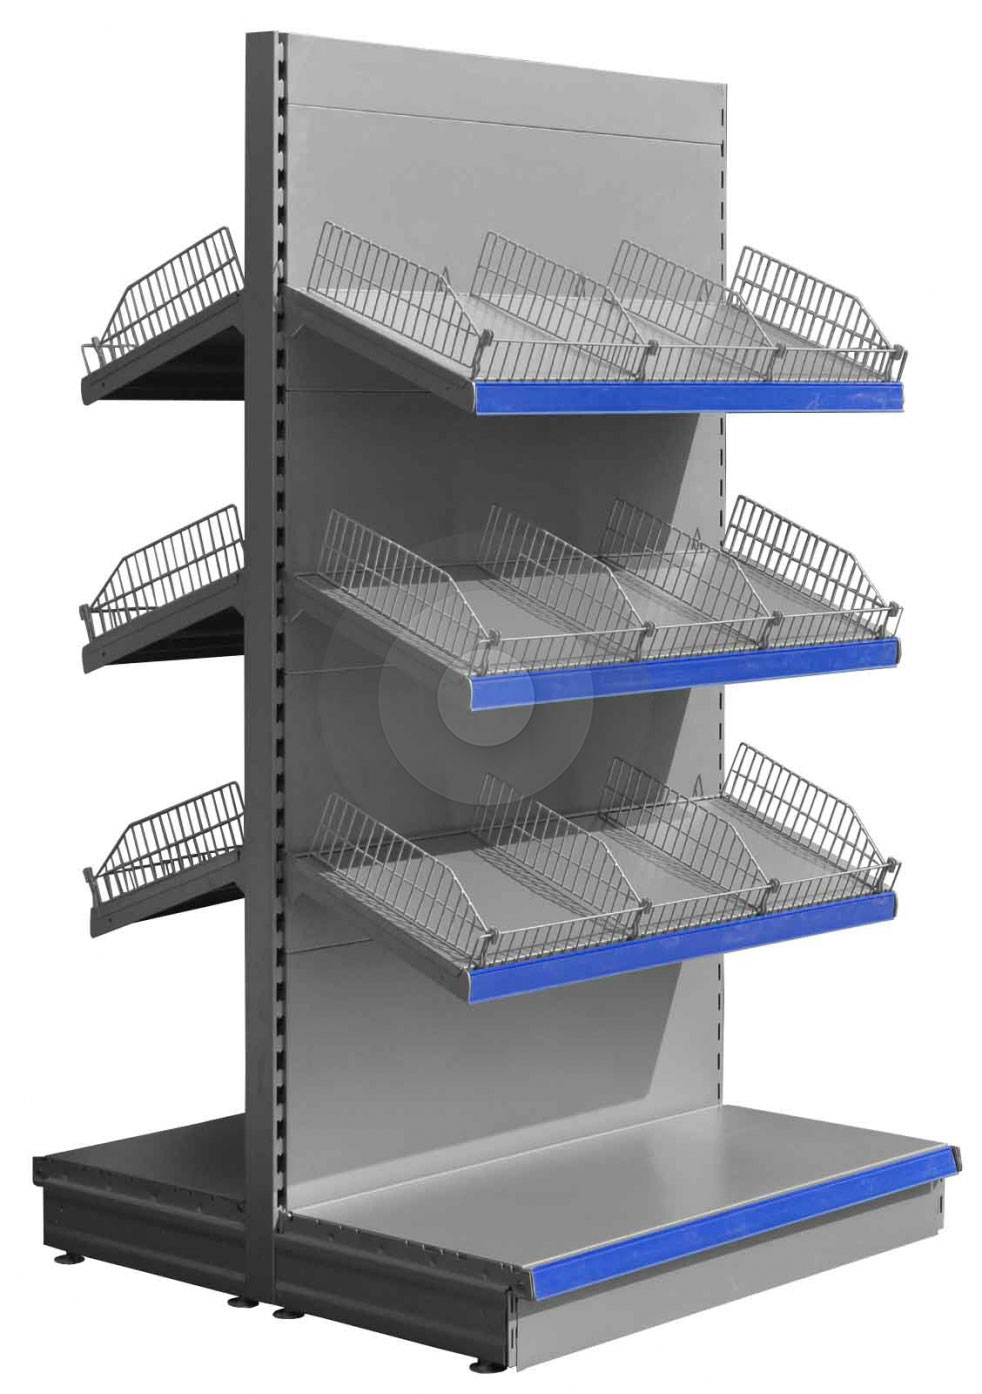 Gondola Shelving with Wire Risers and Dividers (Base + 3) Silver